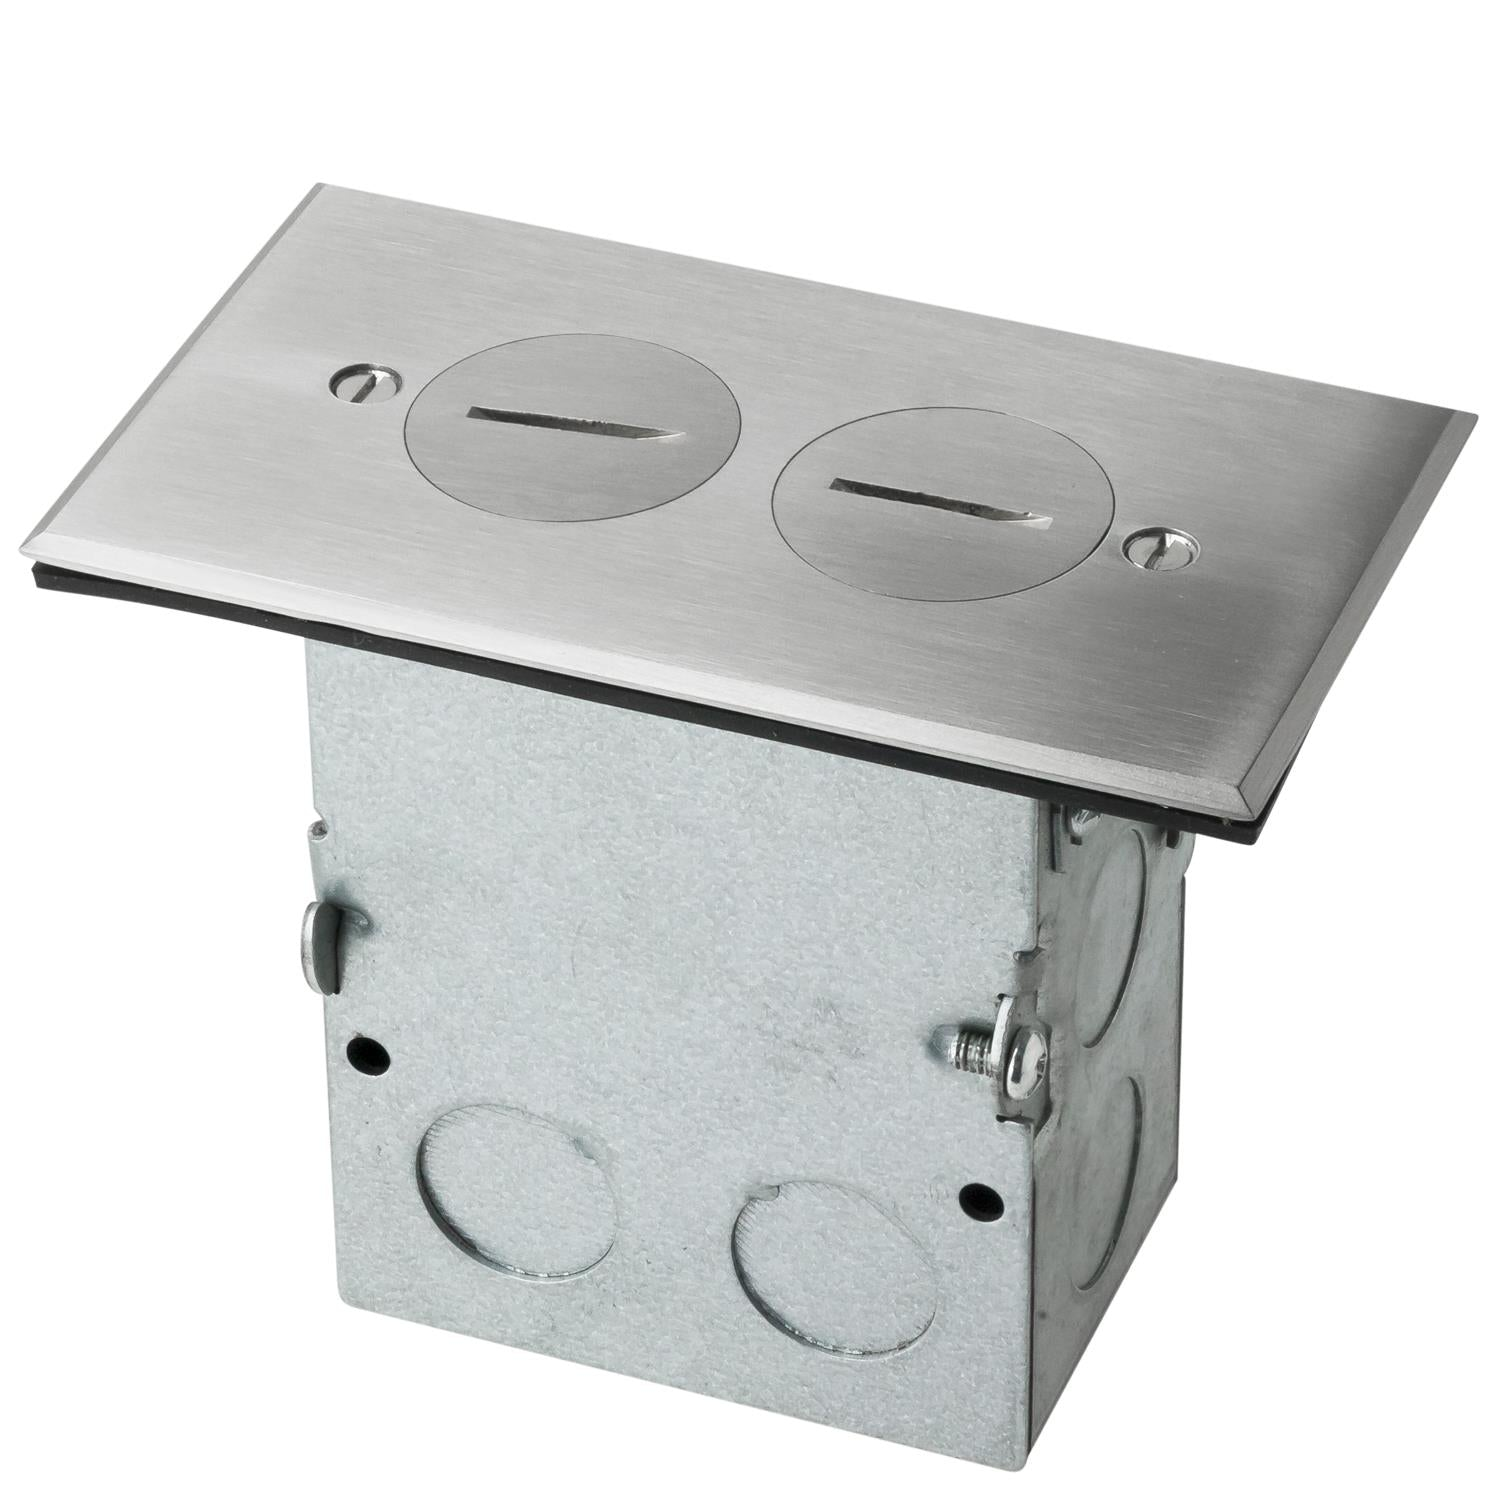 Sunlite 15A/20A 125VAC Stainless Steel Recessed Floor Plate